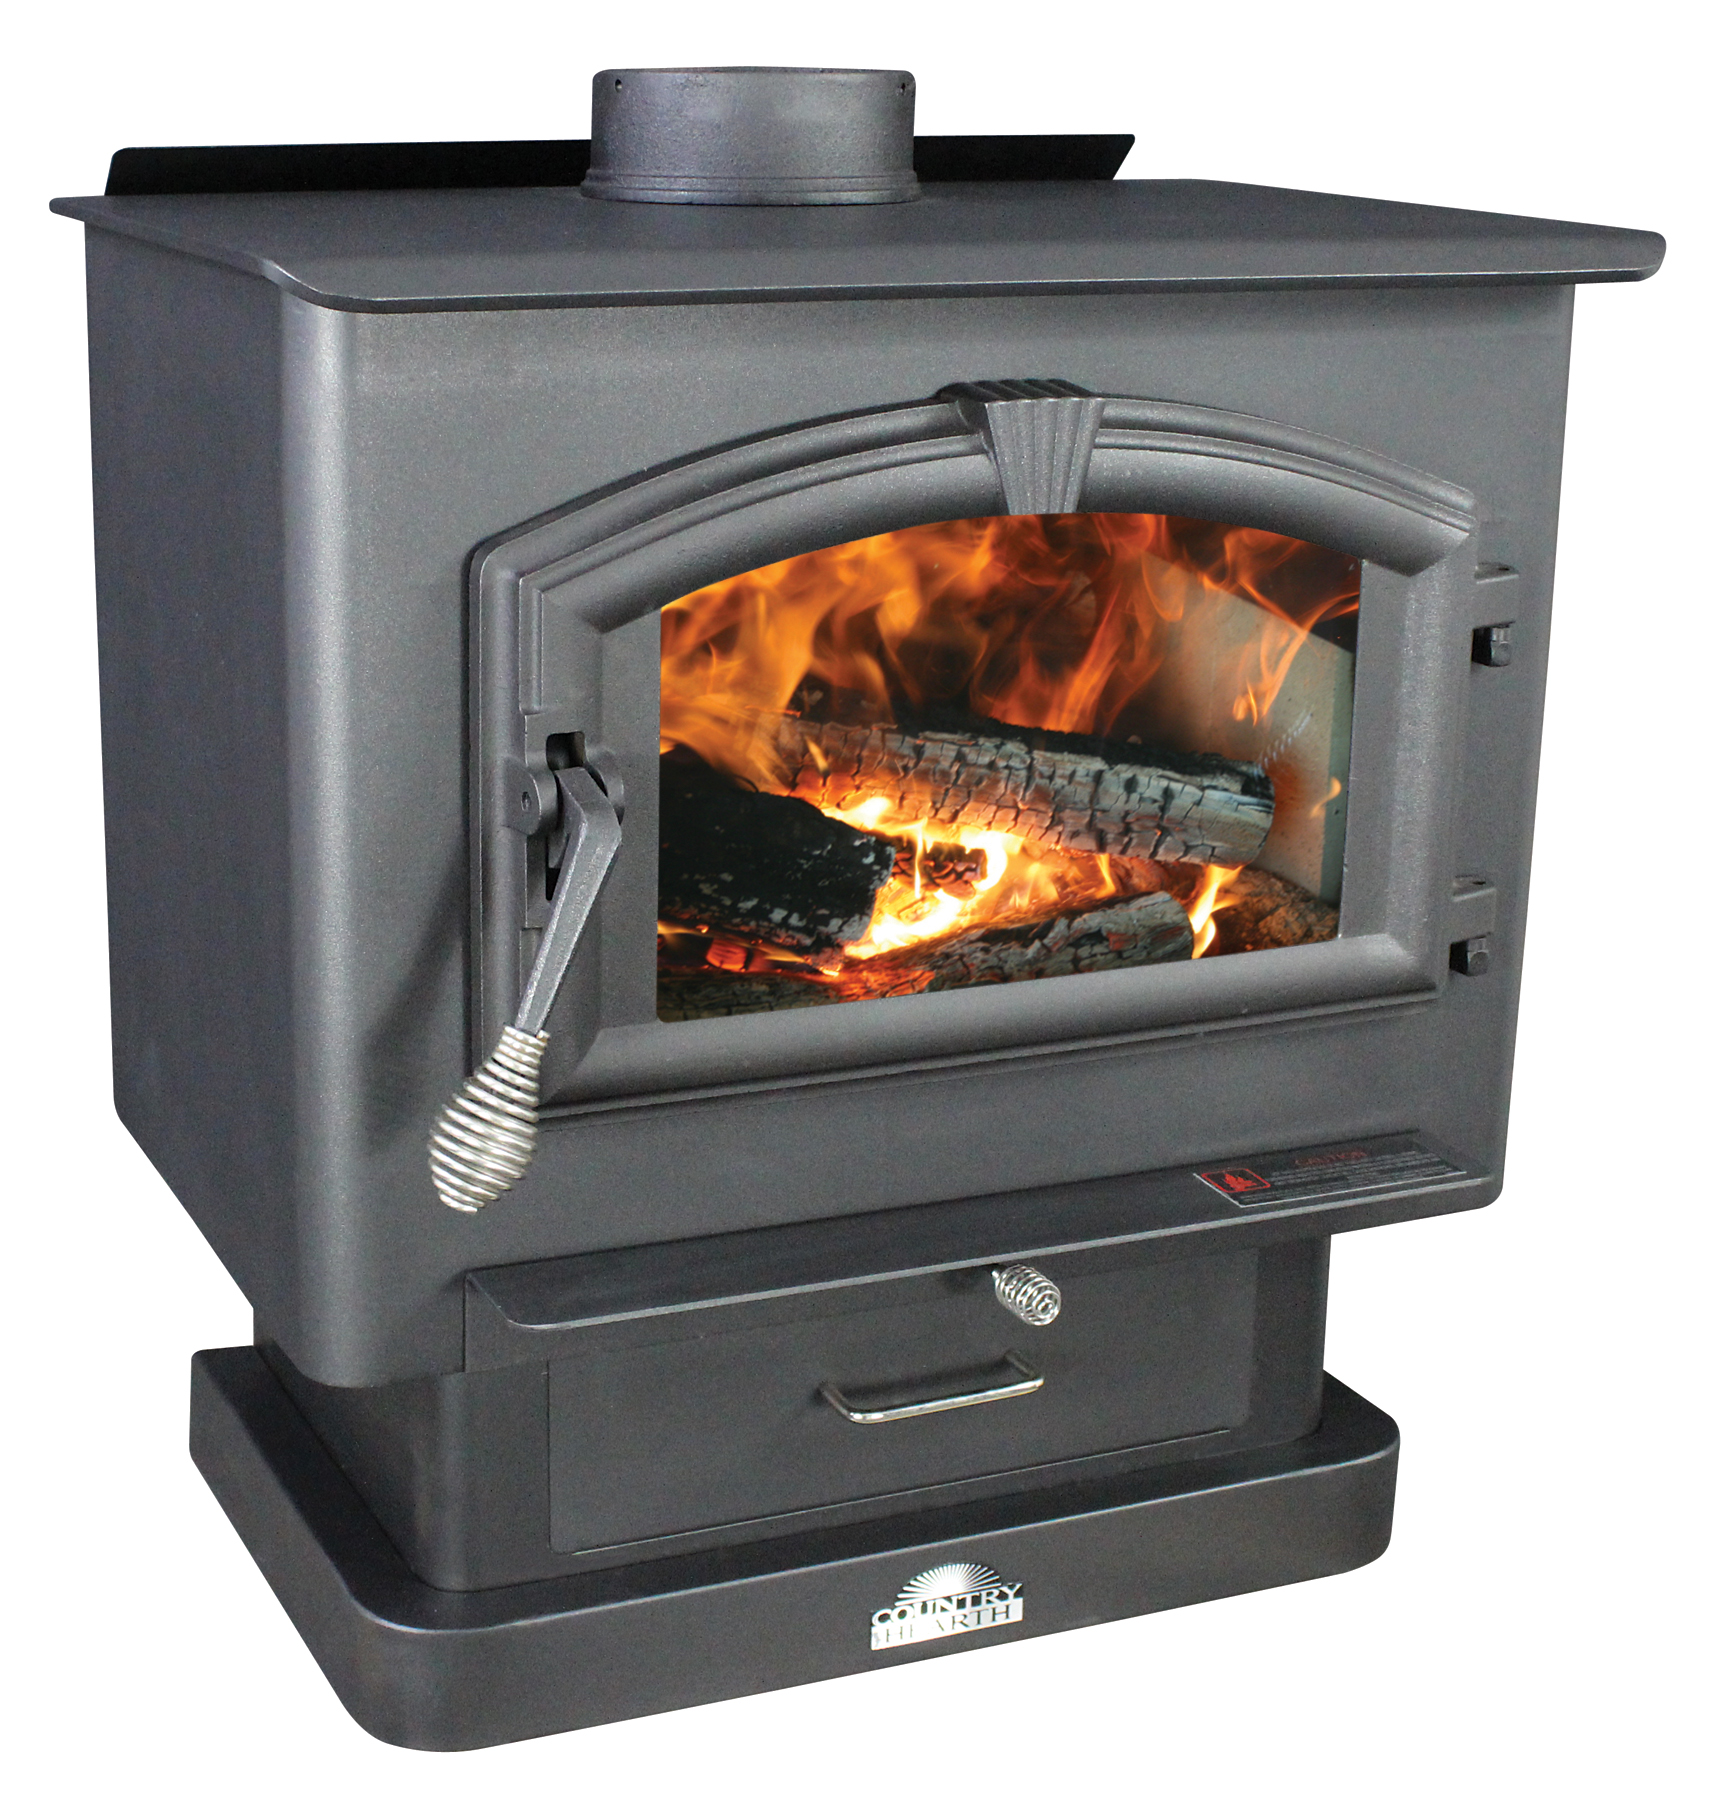 US Stove 2,000 Sq. Ft Medium EPA-Certified Wood Stove